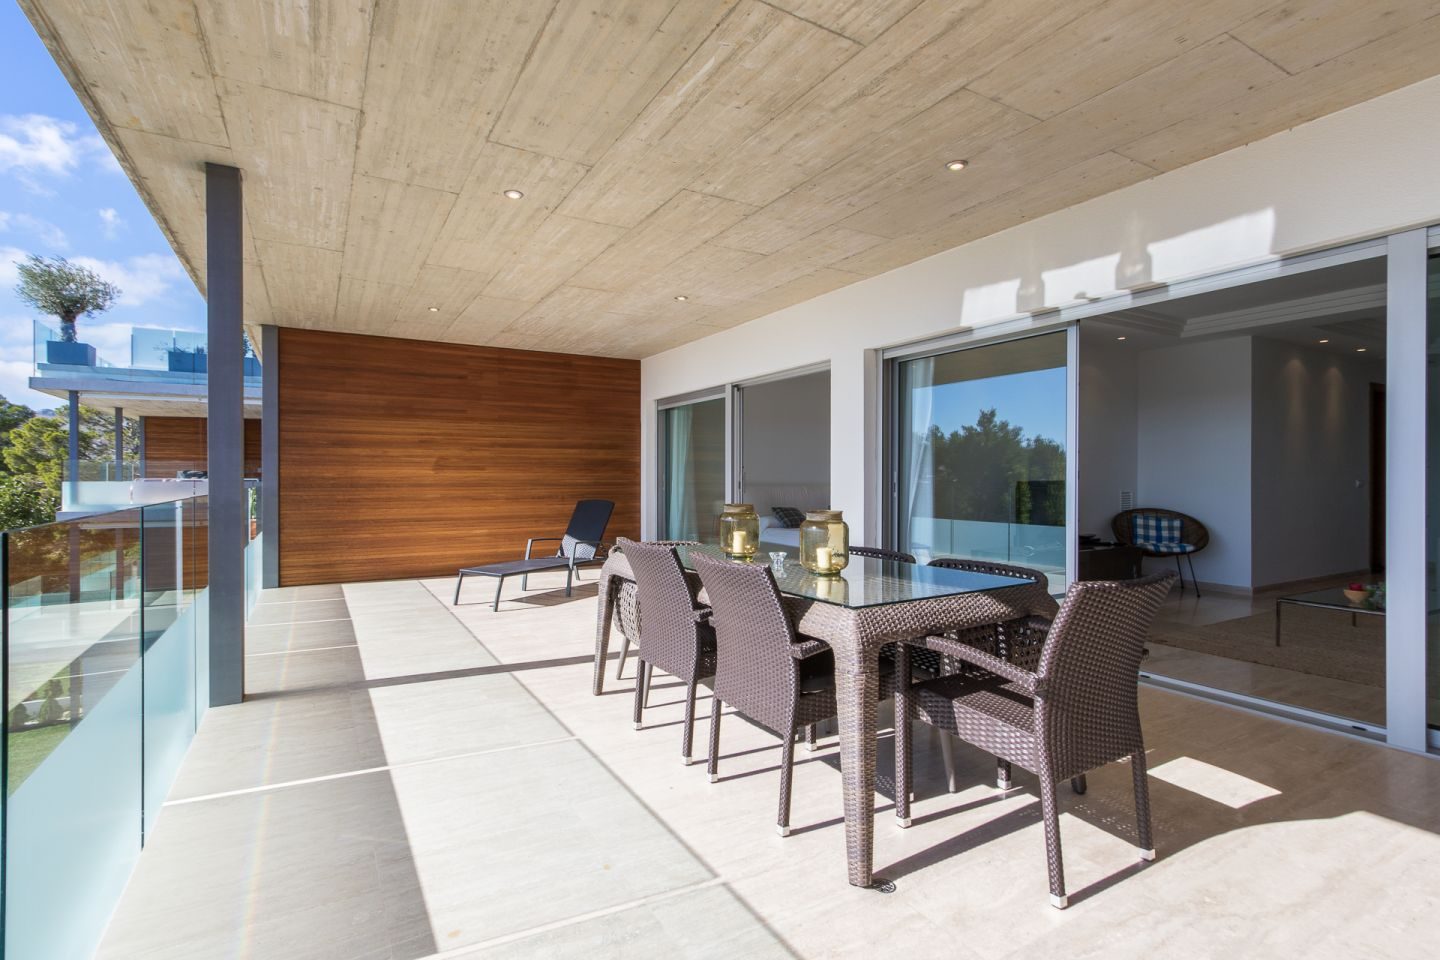 3 Bed Penthouse for sale in PUERTO POLLENSA 6